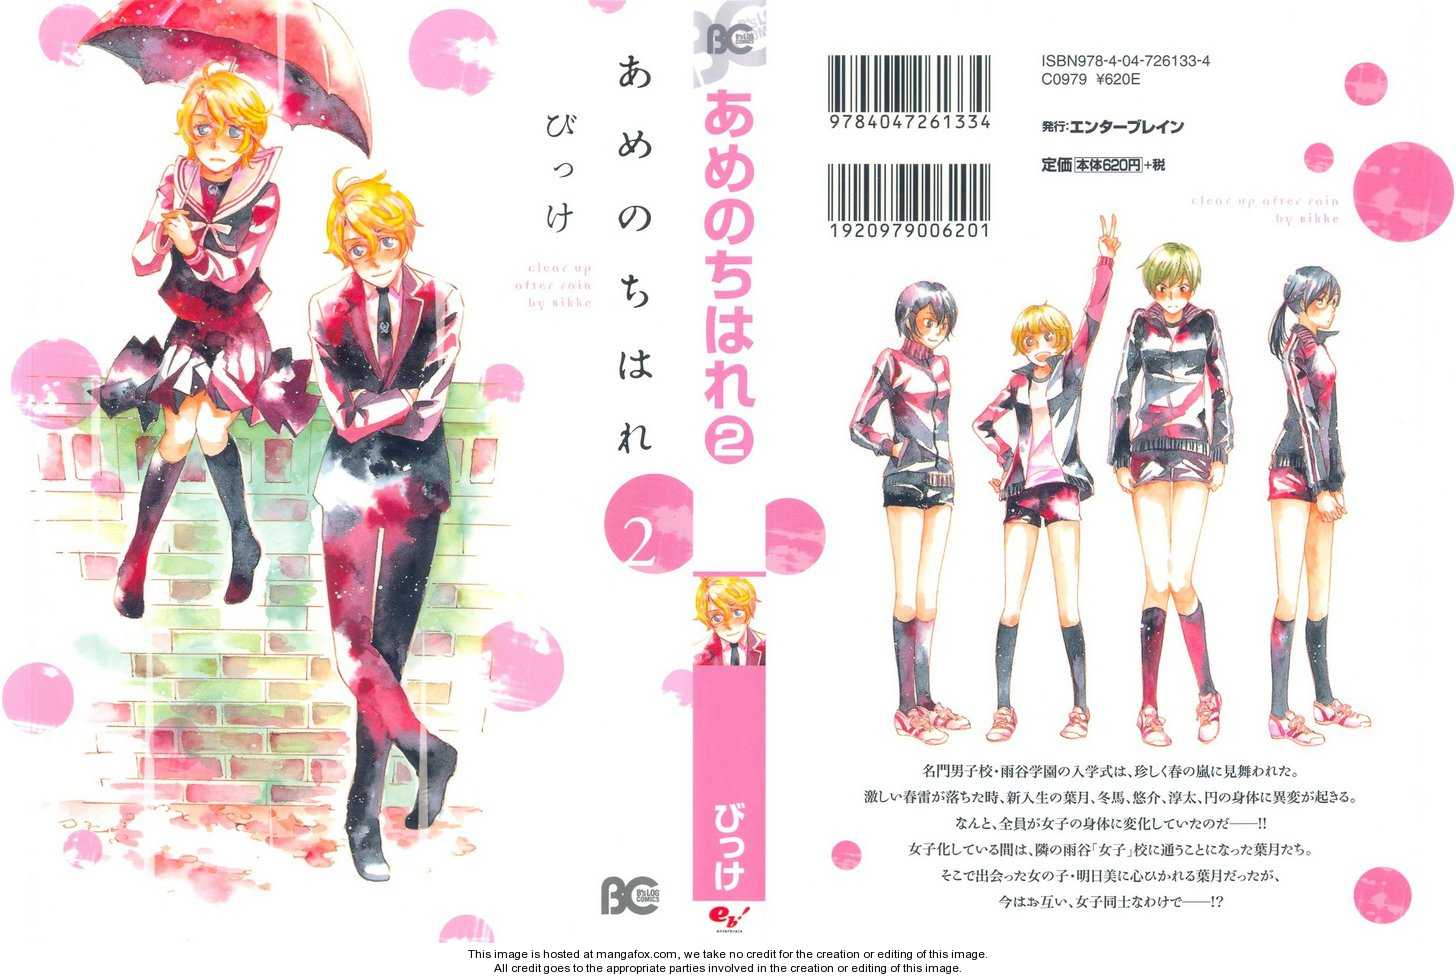 Ame Nochi Hare 6: Impressions of a Spring Evening at MangaFox